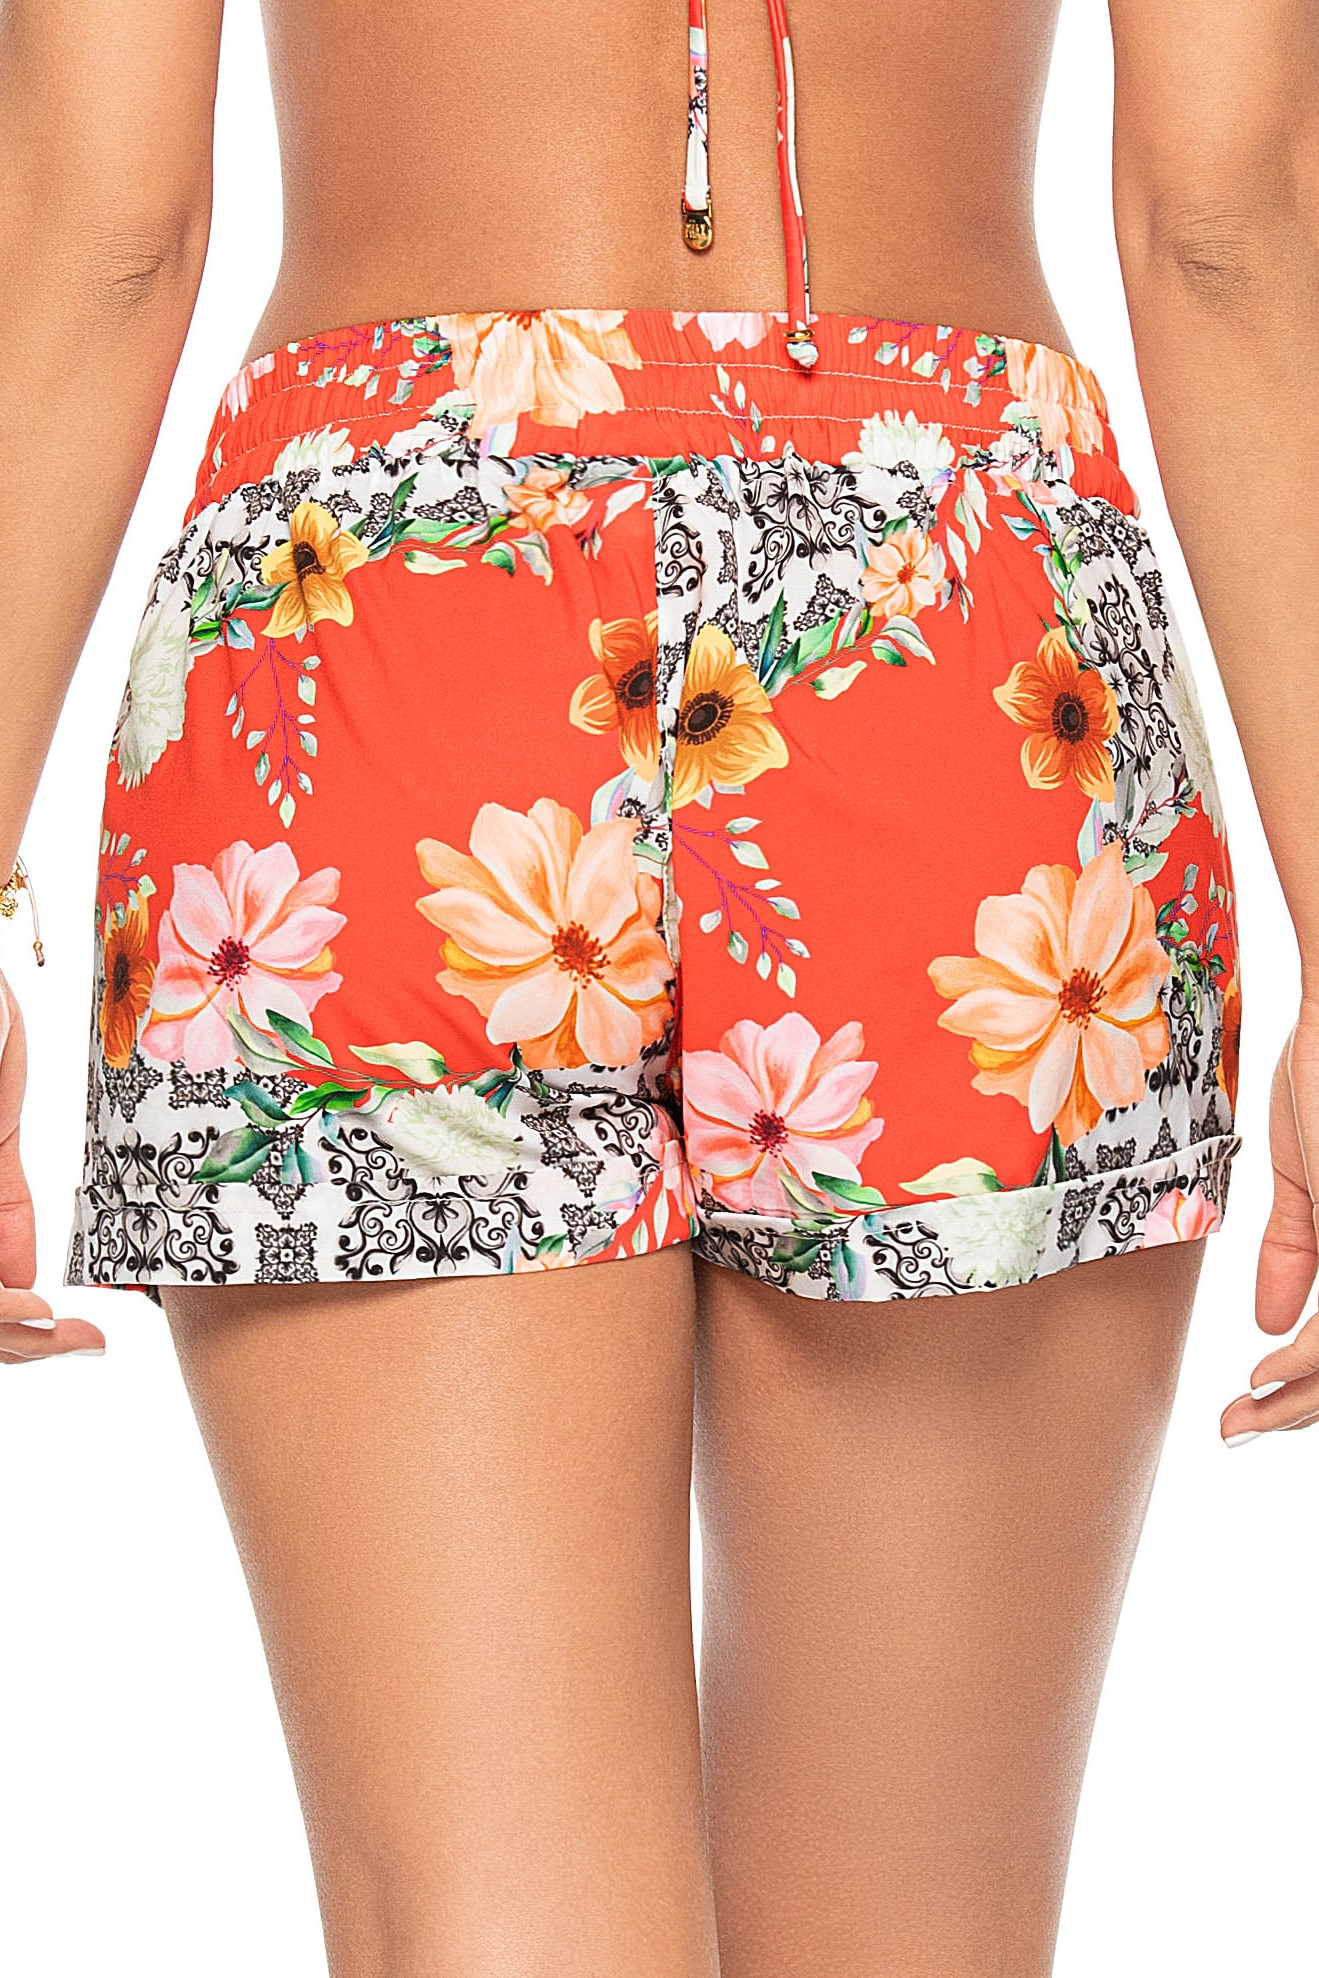 Phax Bella Austria Beach Shorts